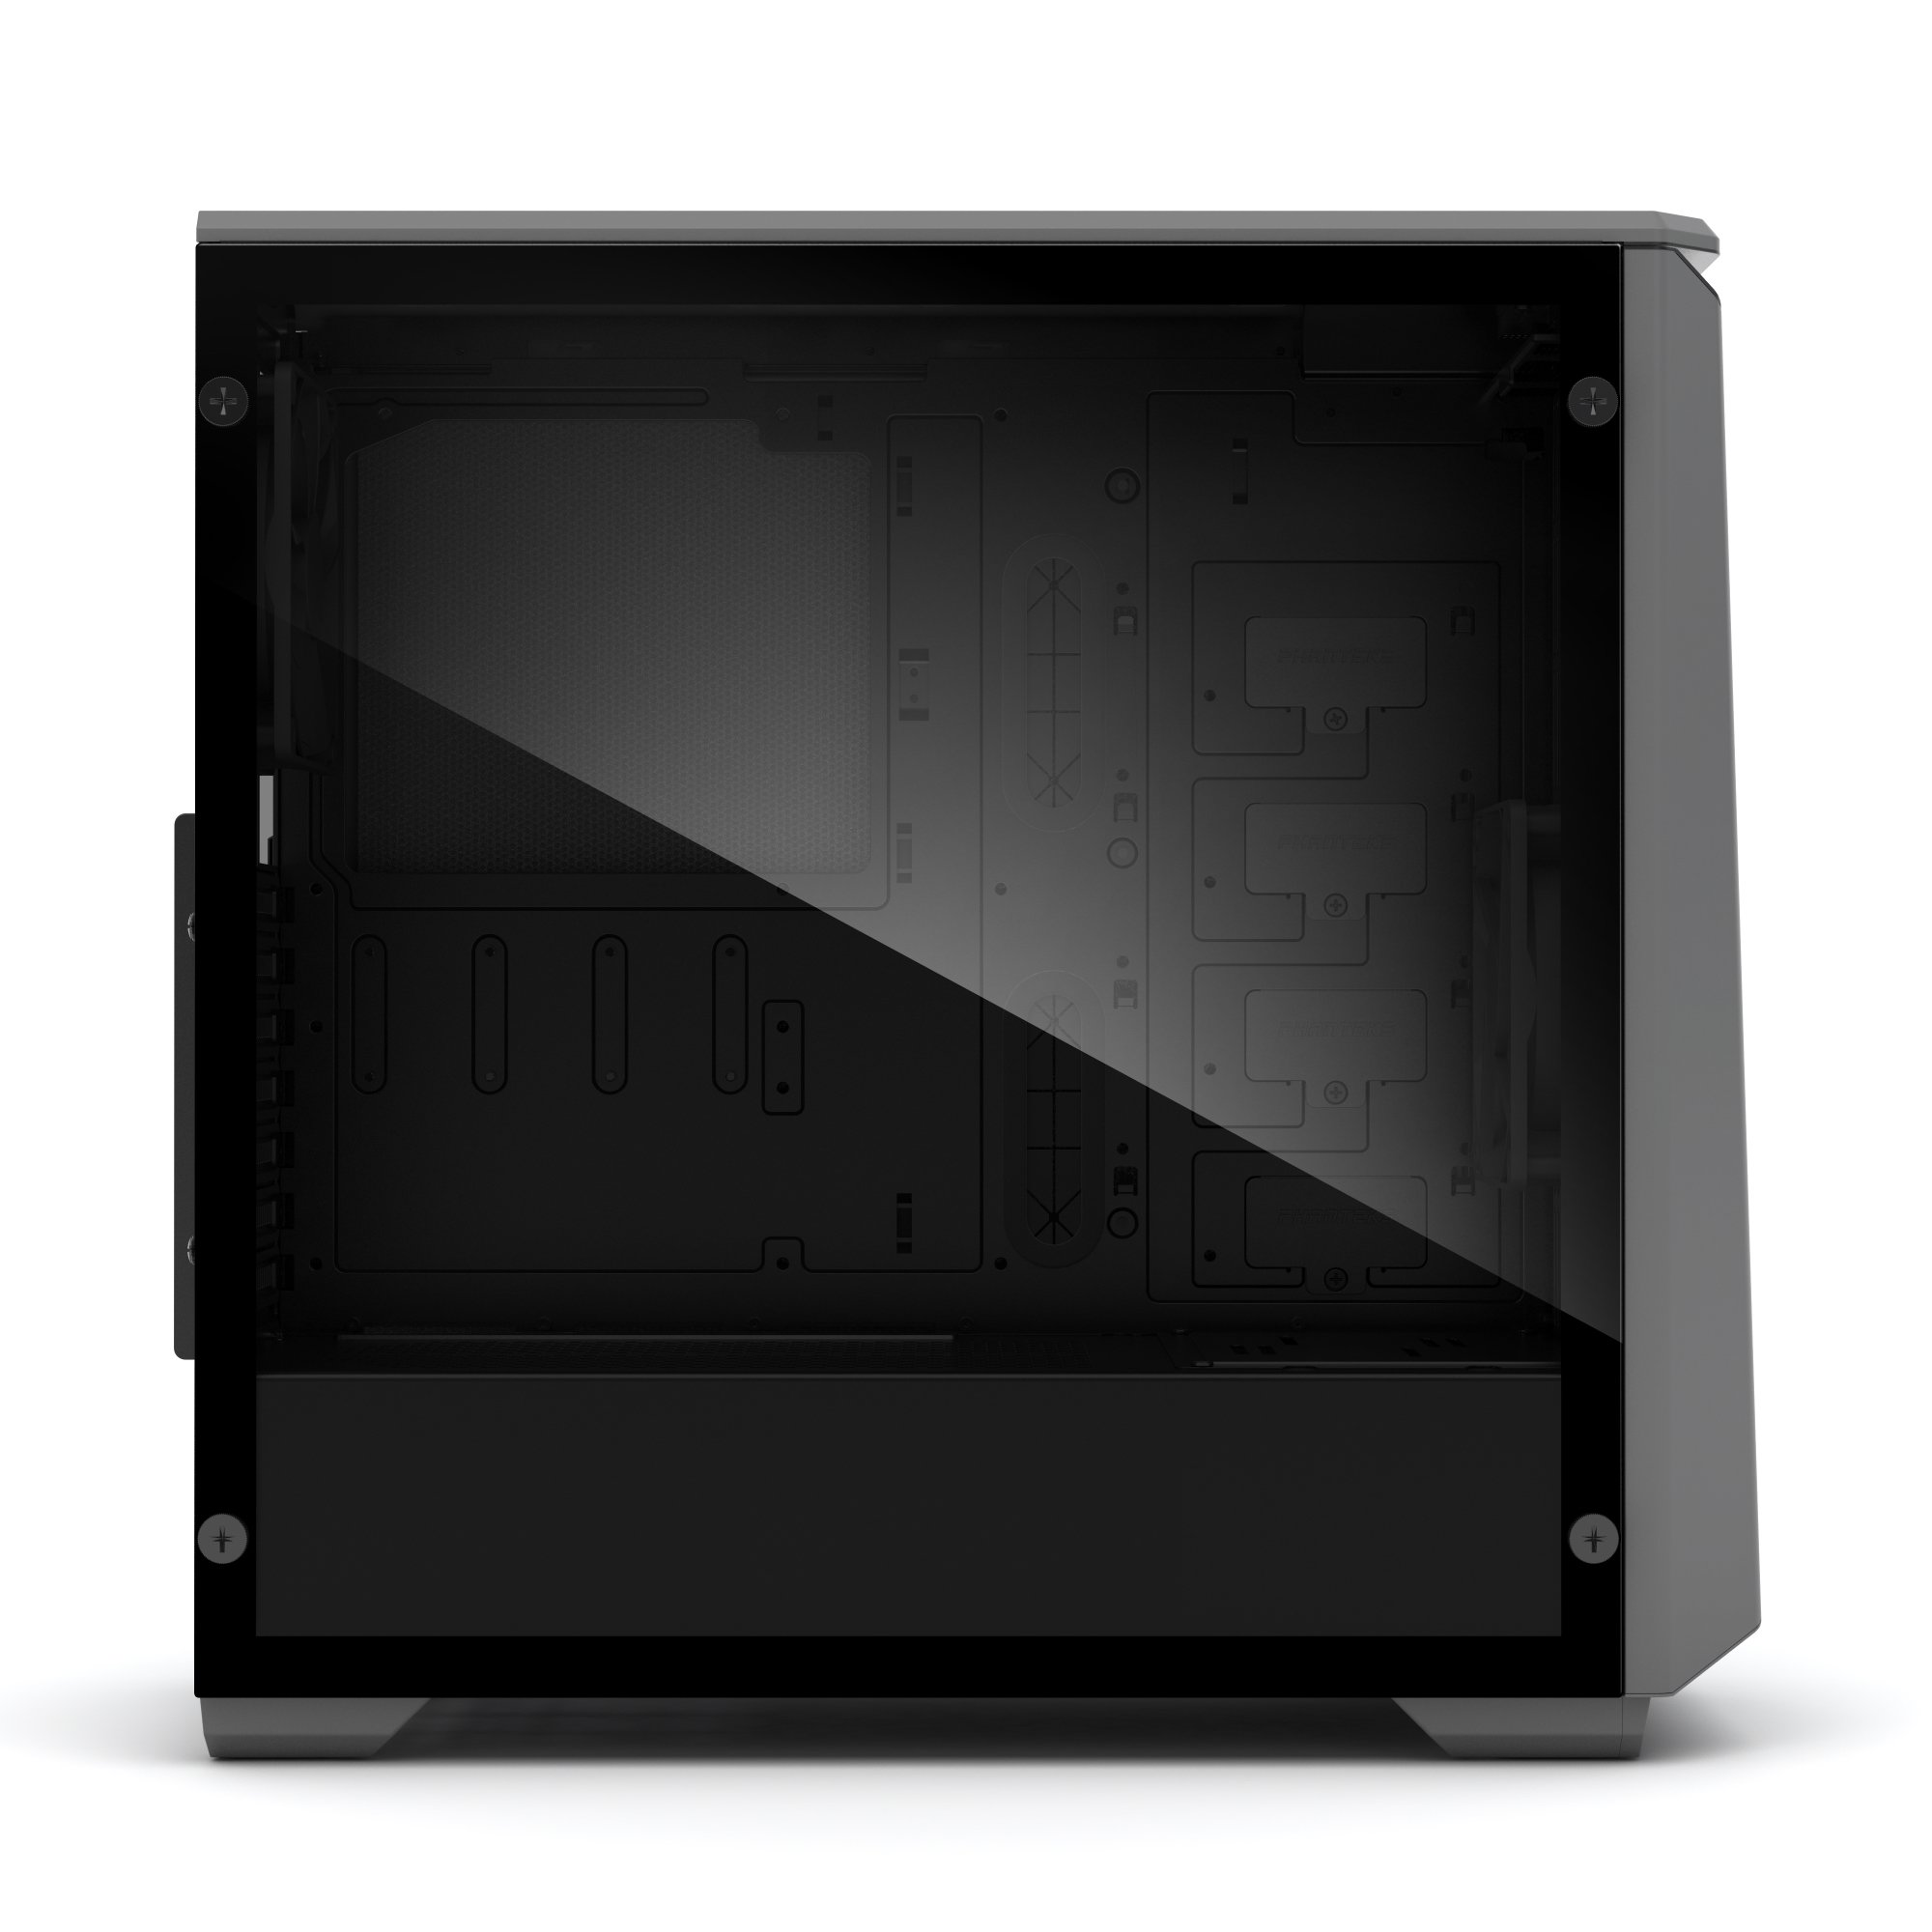 Phanteks PH-EC416PSTG_AG Eclipse P400S Silent Edition with Tempered Glass, Anthracite Grey Cases by Phanteks (Image #7)